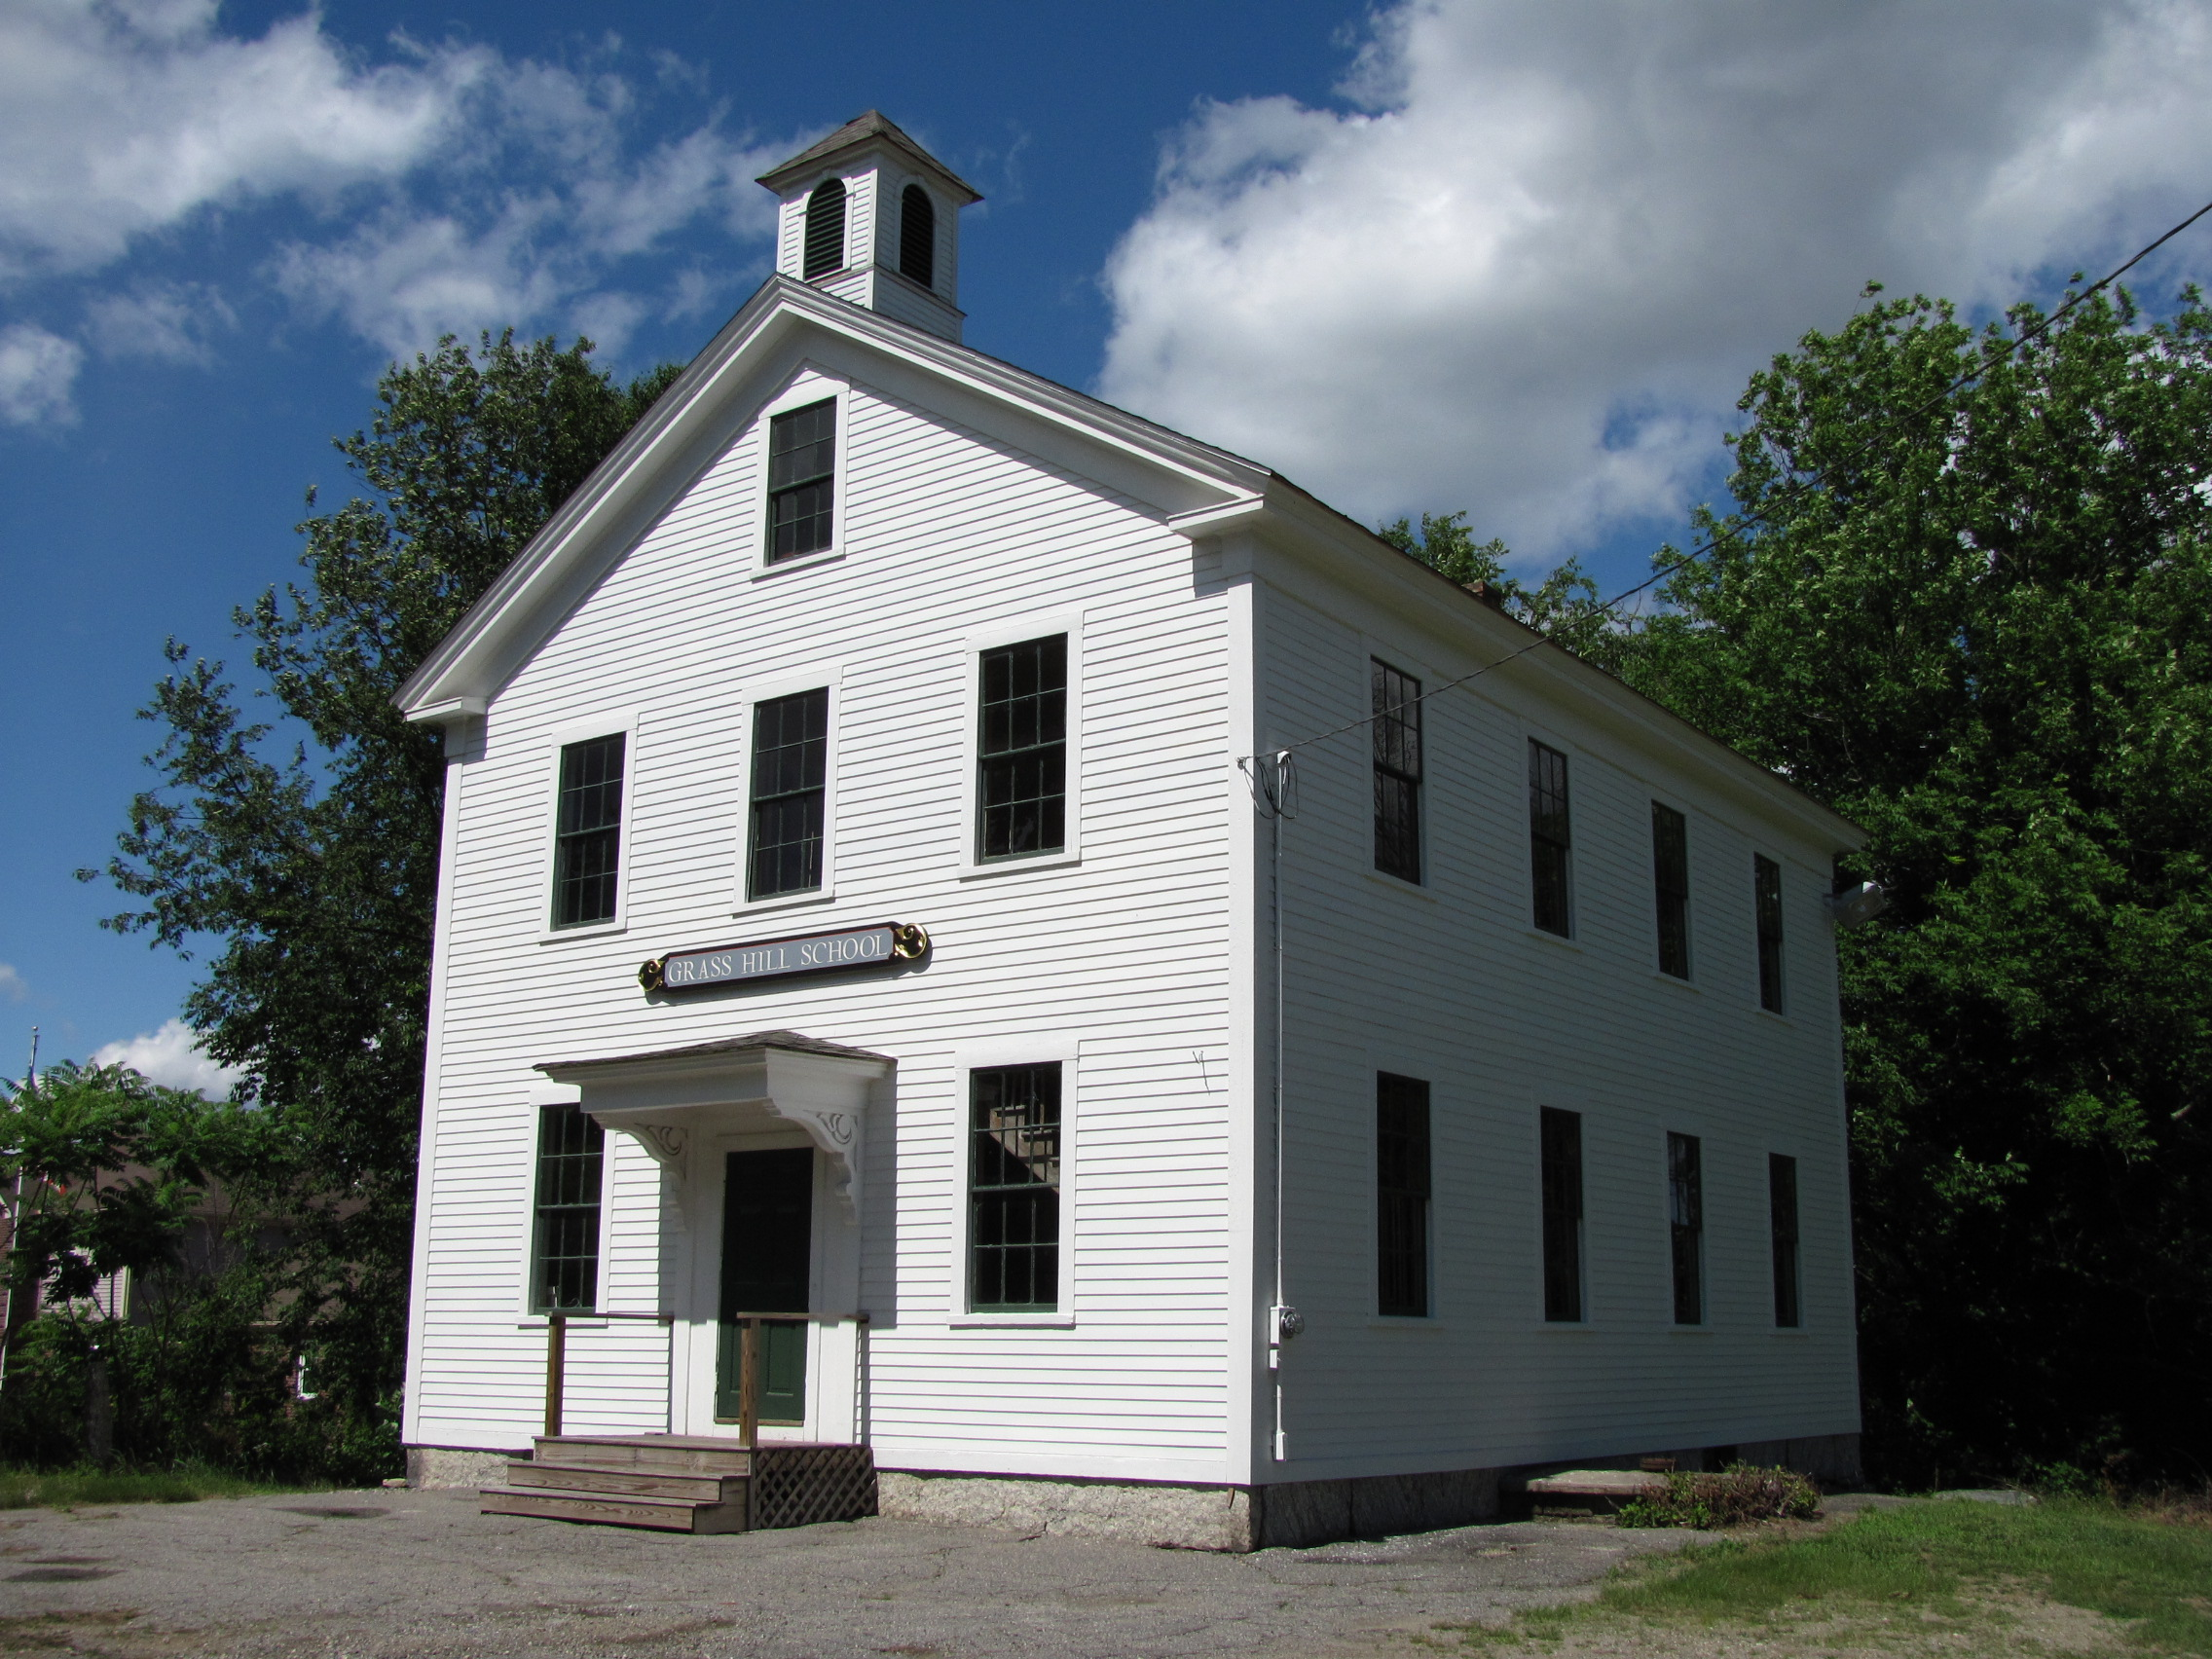 File:Grass Hill School, West Millbury MA.jpg